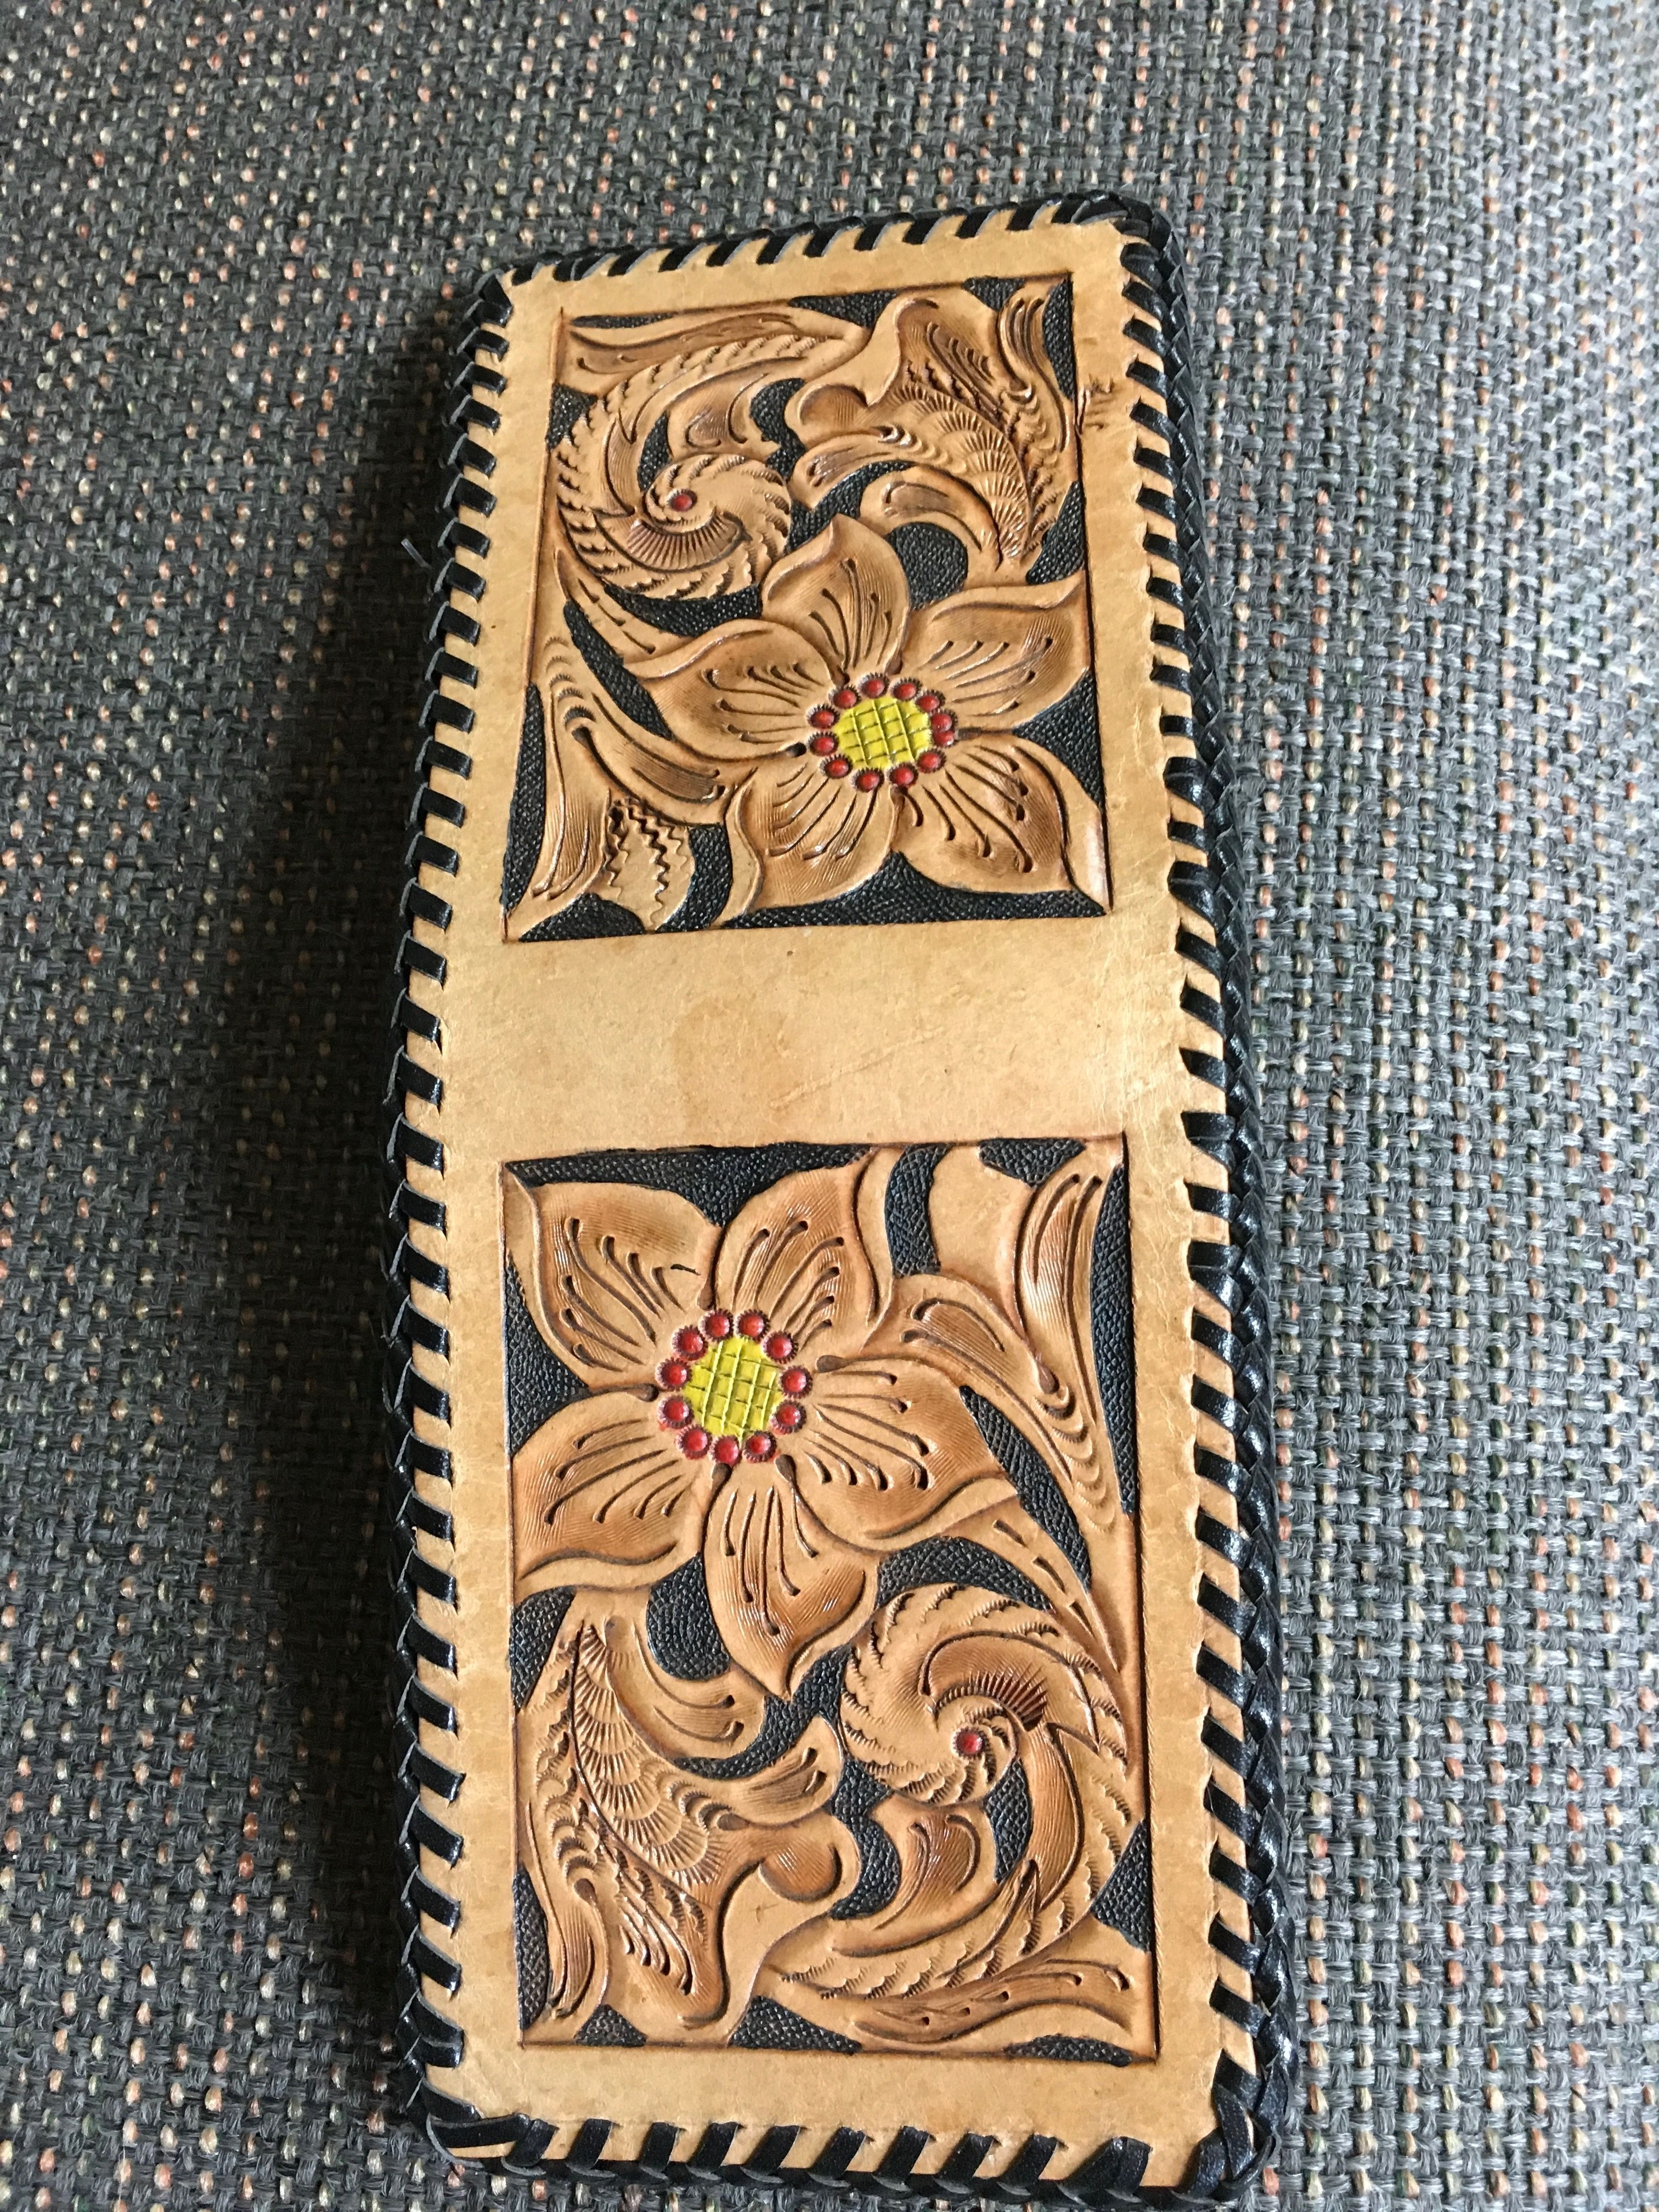 Custom tooled leather billfold wallet hand laced